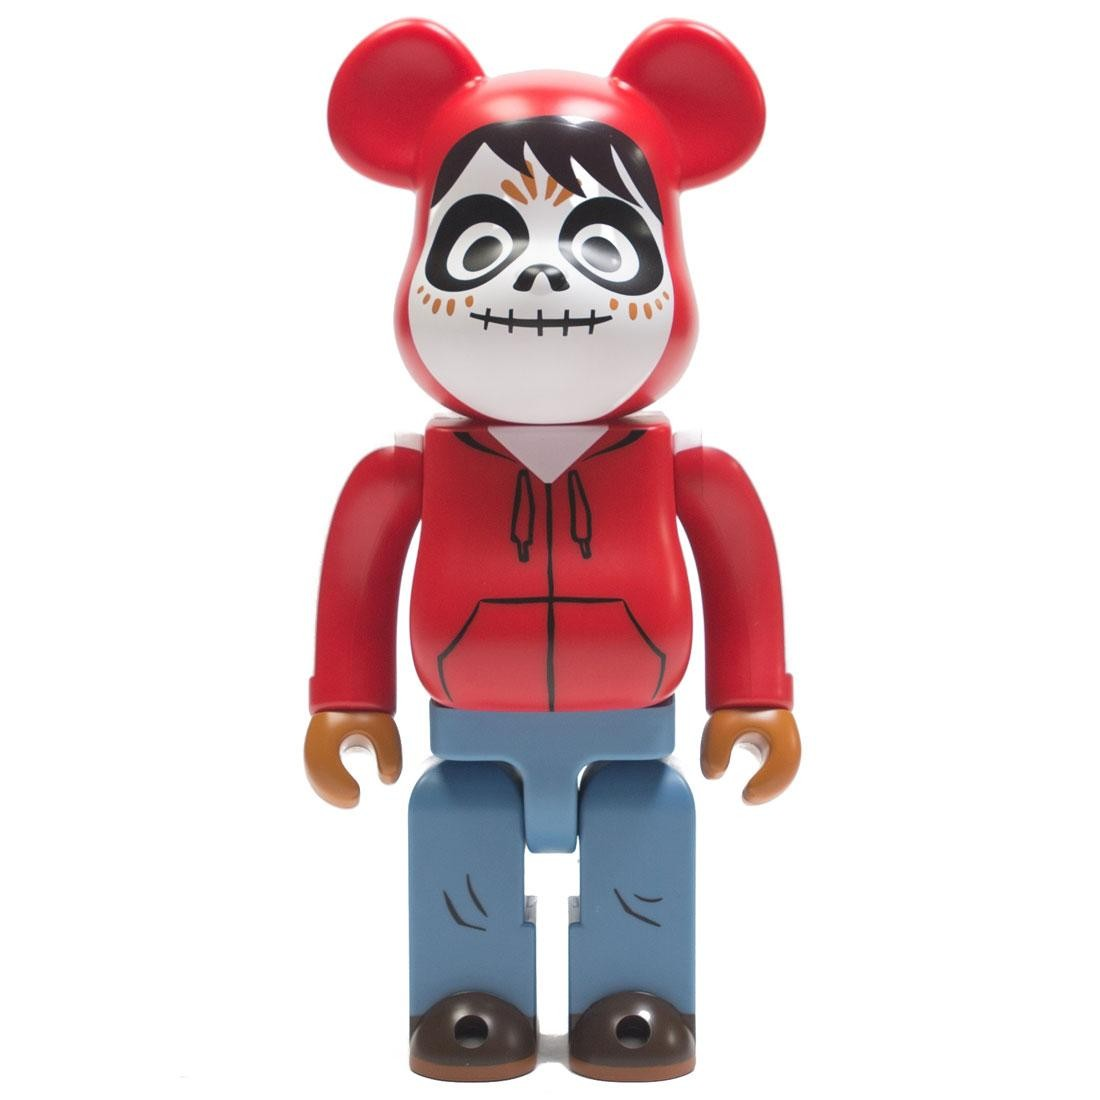 Medicom Miguel 400% Bearbrick Figure (red)